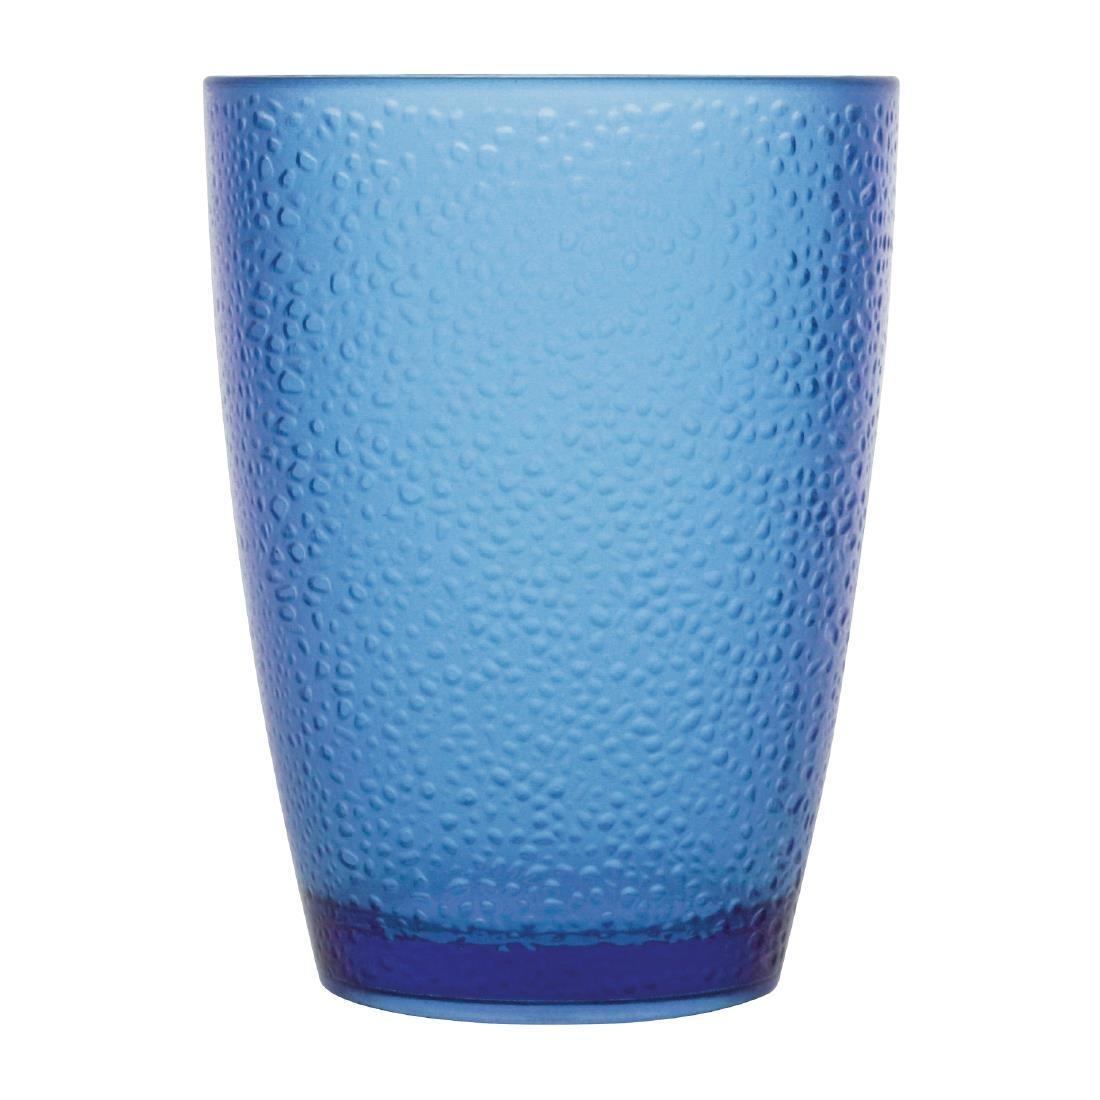 Kristallon Polycarbonate Tumbler Pebbled Blue 275ml - Case 6 - DC929